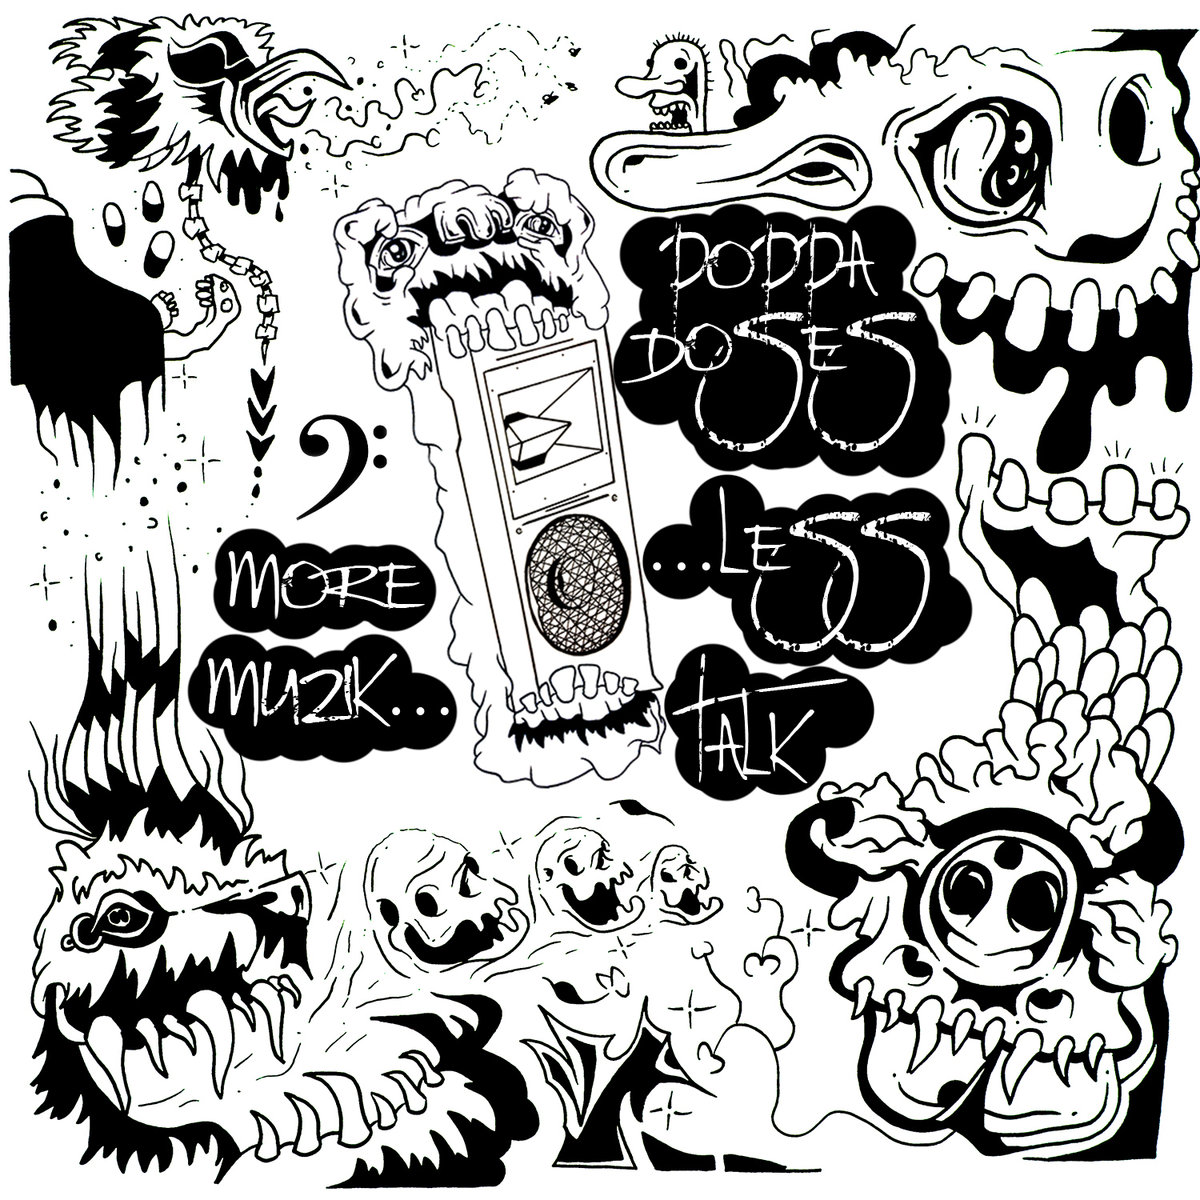 Poppa Doses - Jaded Undulated @ 'More Muzik Less Talk' album (electronic, dubstep)